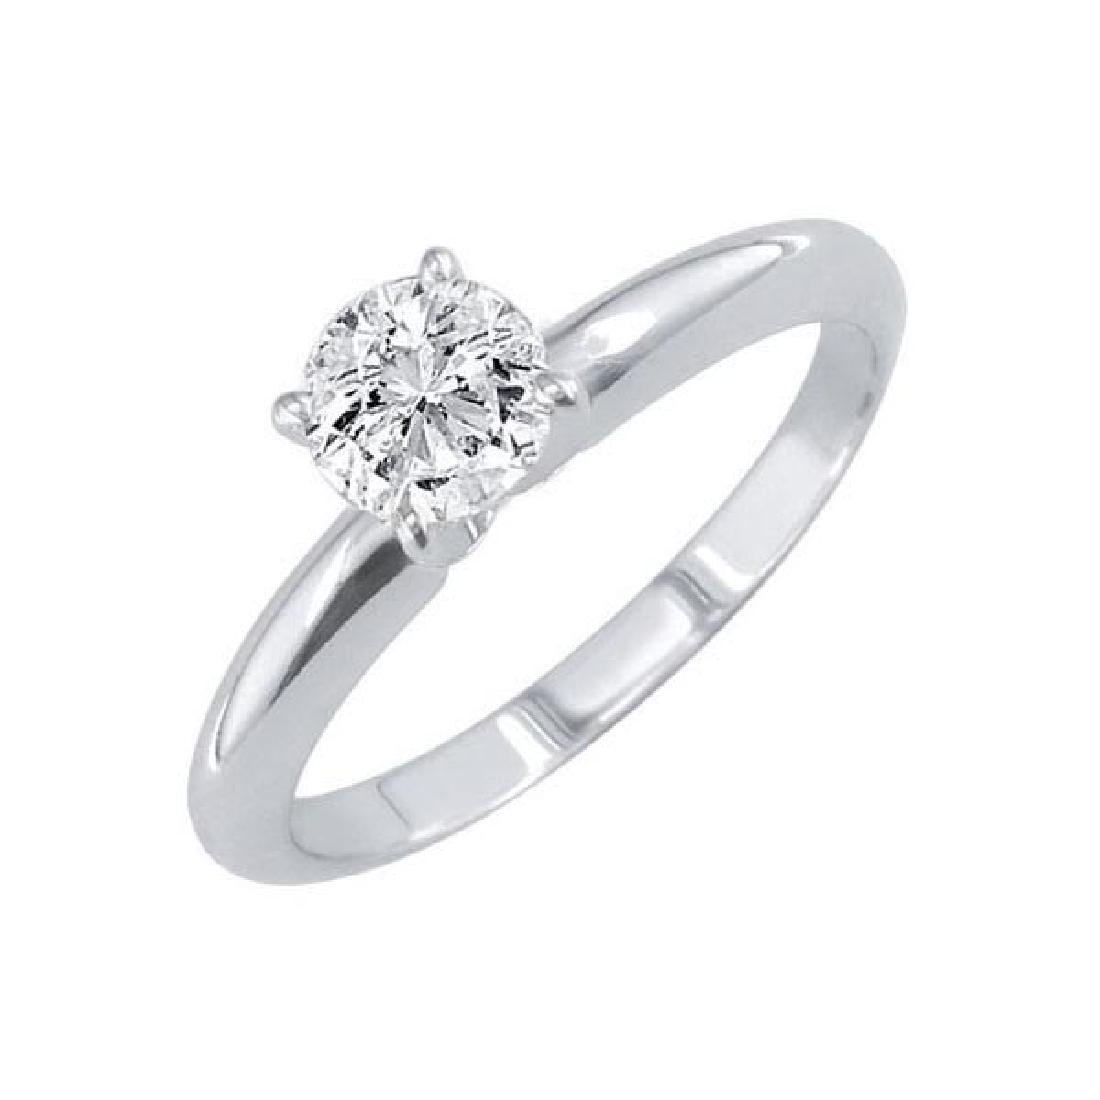 Certified 0.44 CTW Round Diamond Solitaire 14k Ring D/S